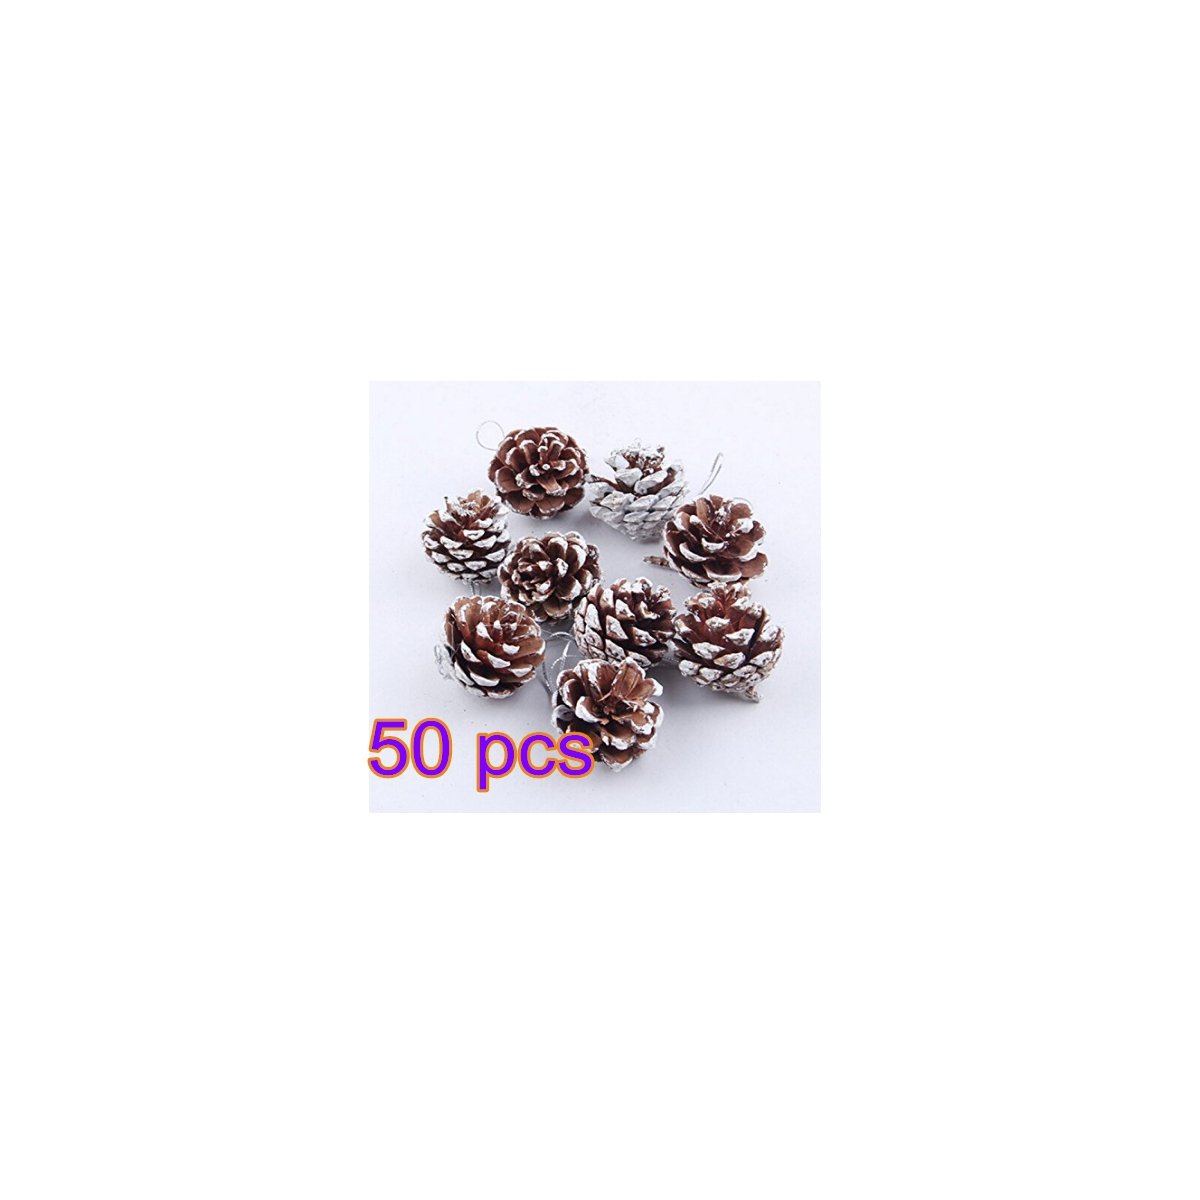 Banbo Yohi Christmas Mini Pine Cones with String Natural Pine Cones for Christmas Tree Decoration 50pcs BanboYohi